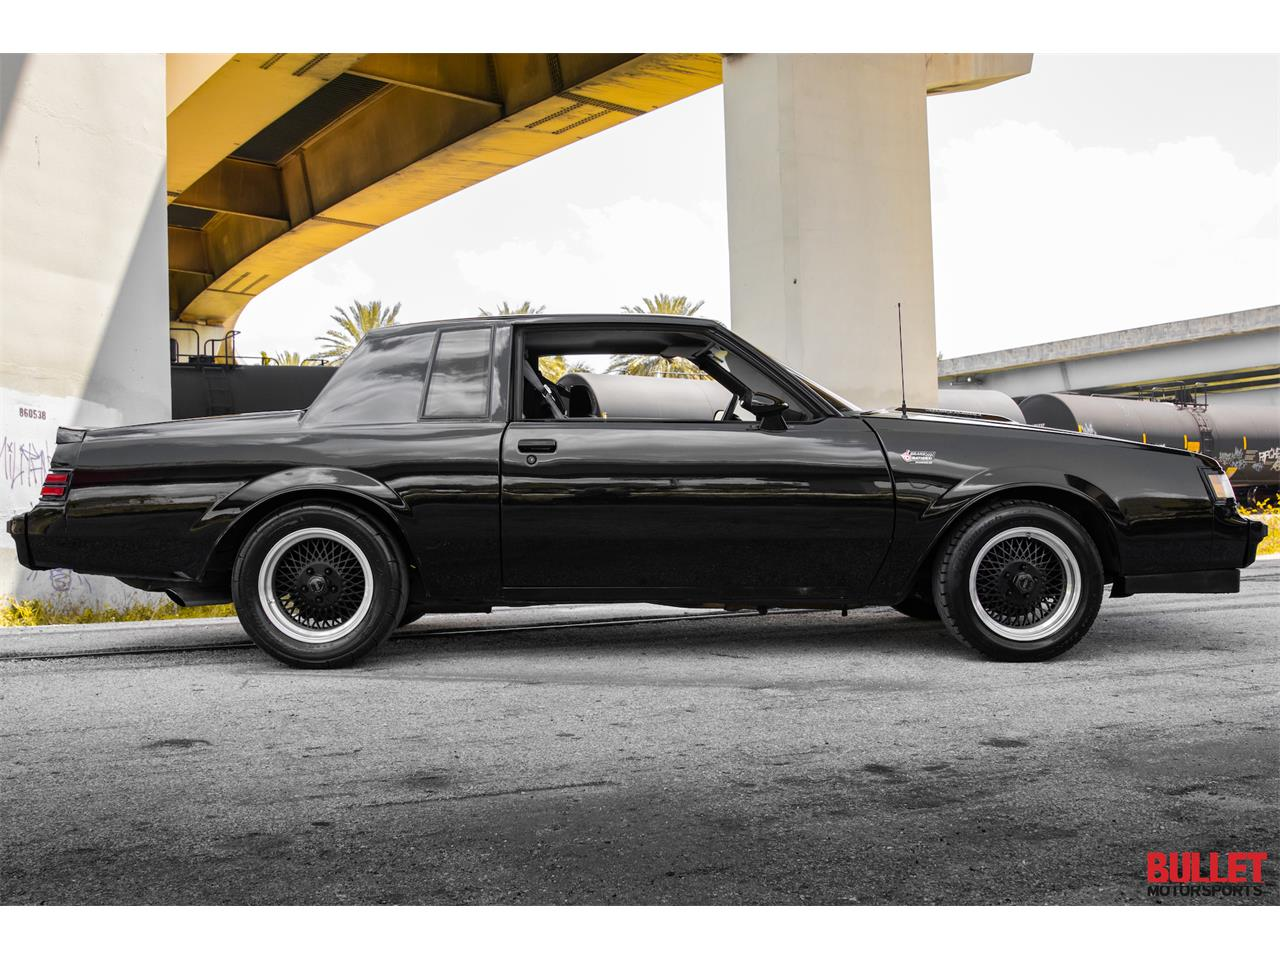 Large Picture of '87 Grand National located in Fort Lauderdale Florida Offered by Bullet Motorsports Inc - PSK7